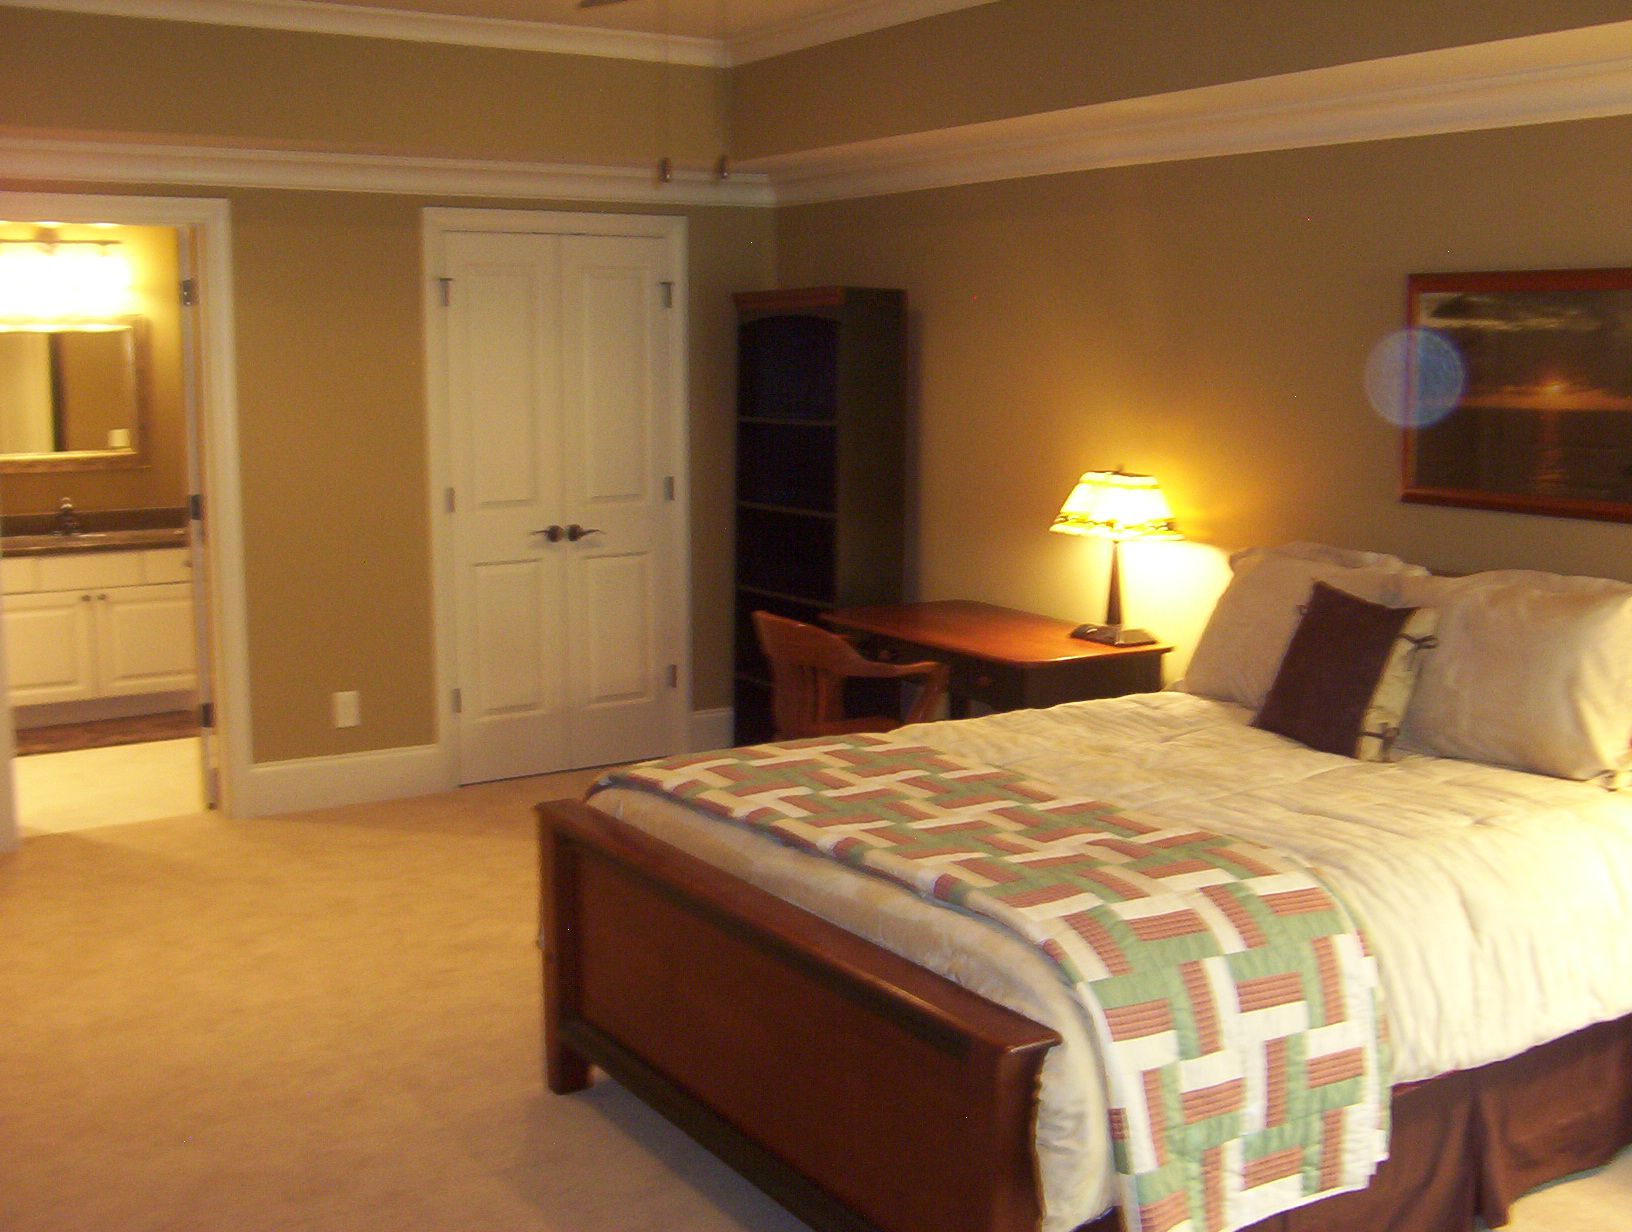 6 basement bedroom ideas to create perfect basement for Perfect bedroom design ideas